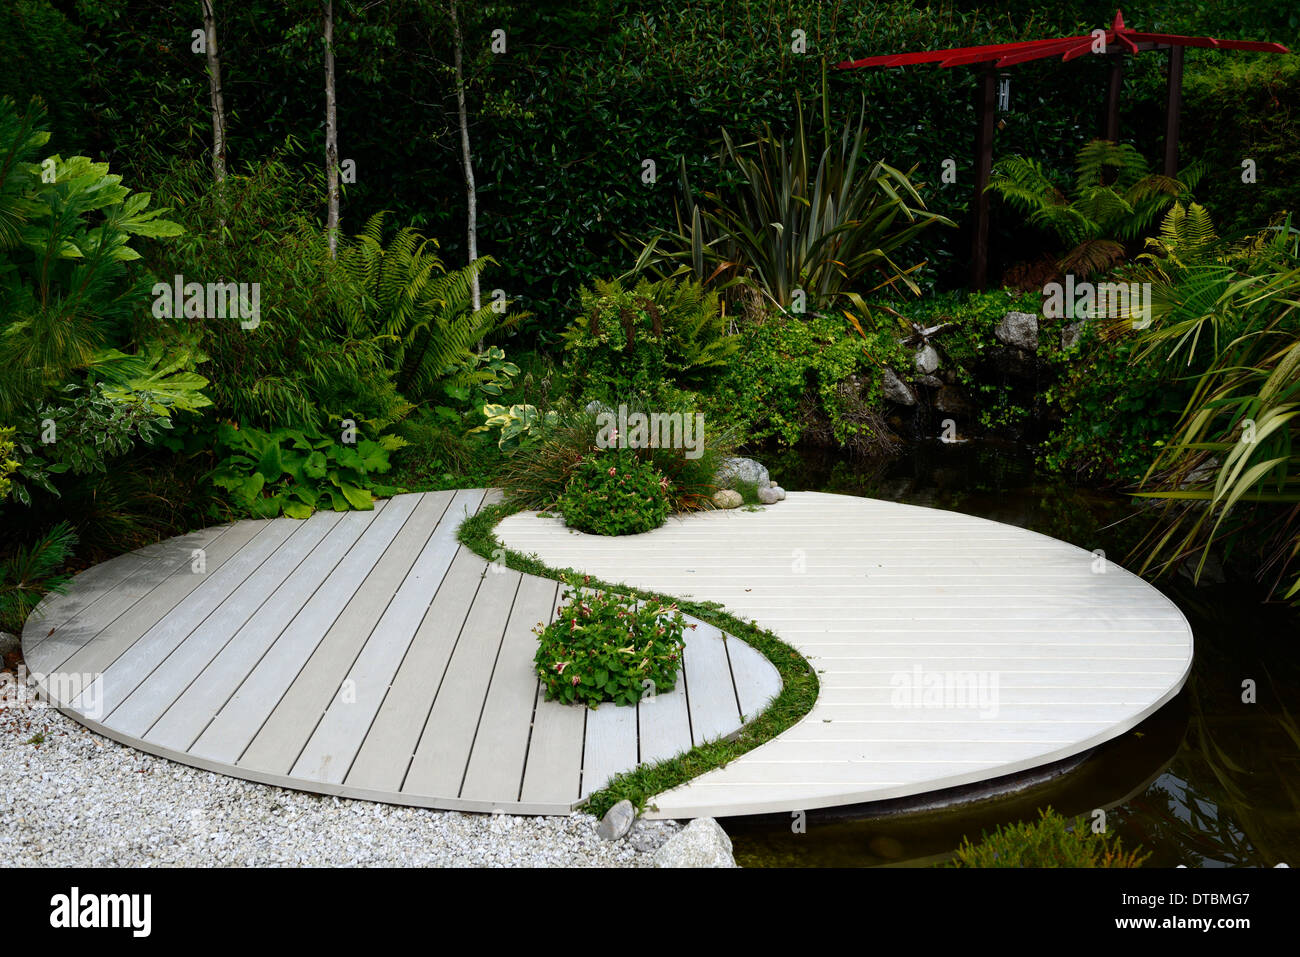 ying yang harmony symbol feng shui japanese asian garden gardening stock photo 66640455 alamy. Black Bedroom Furniture Sets. Home Design Ideas